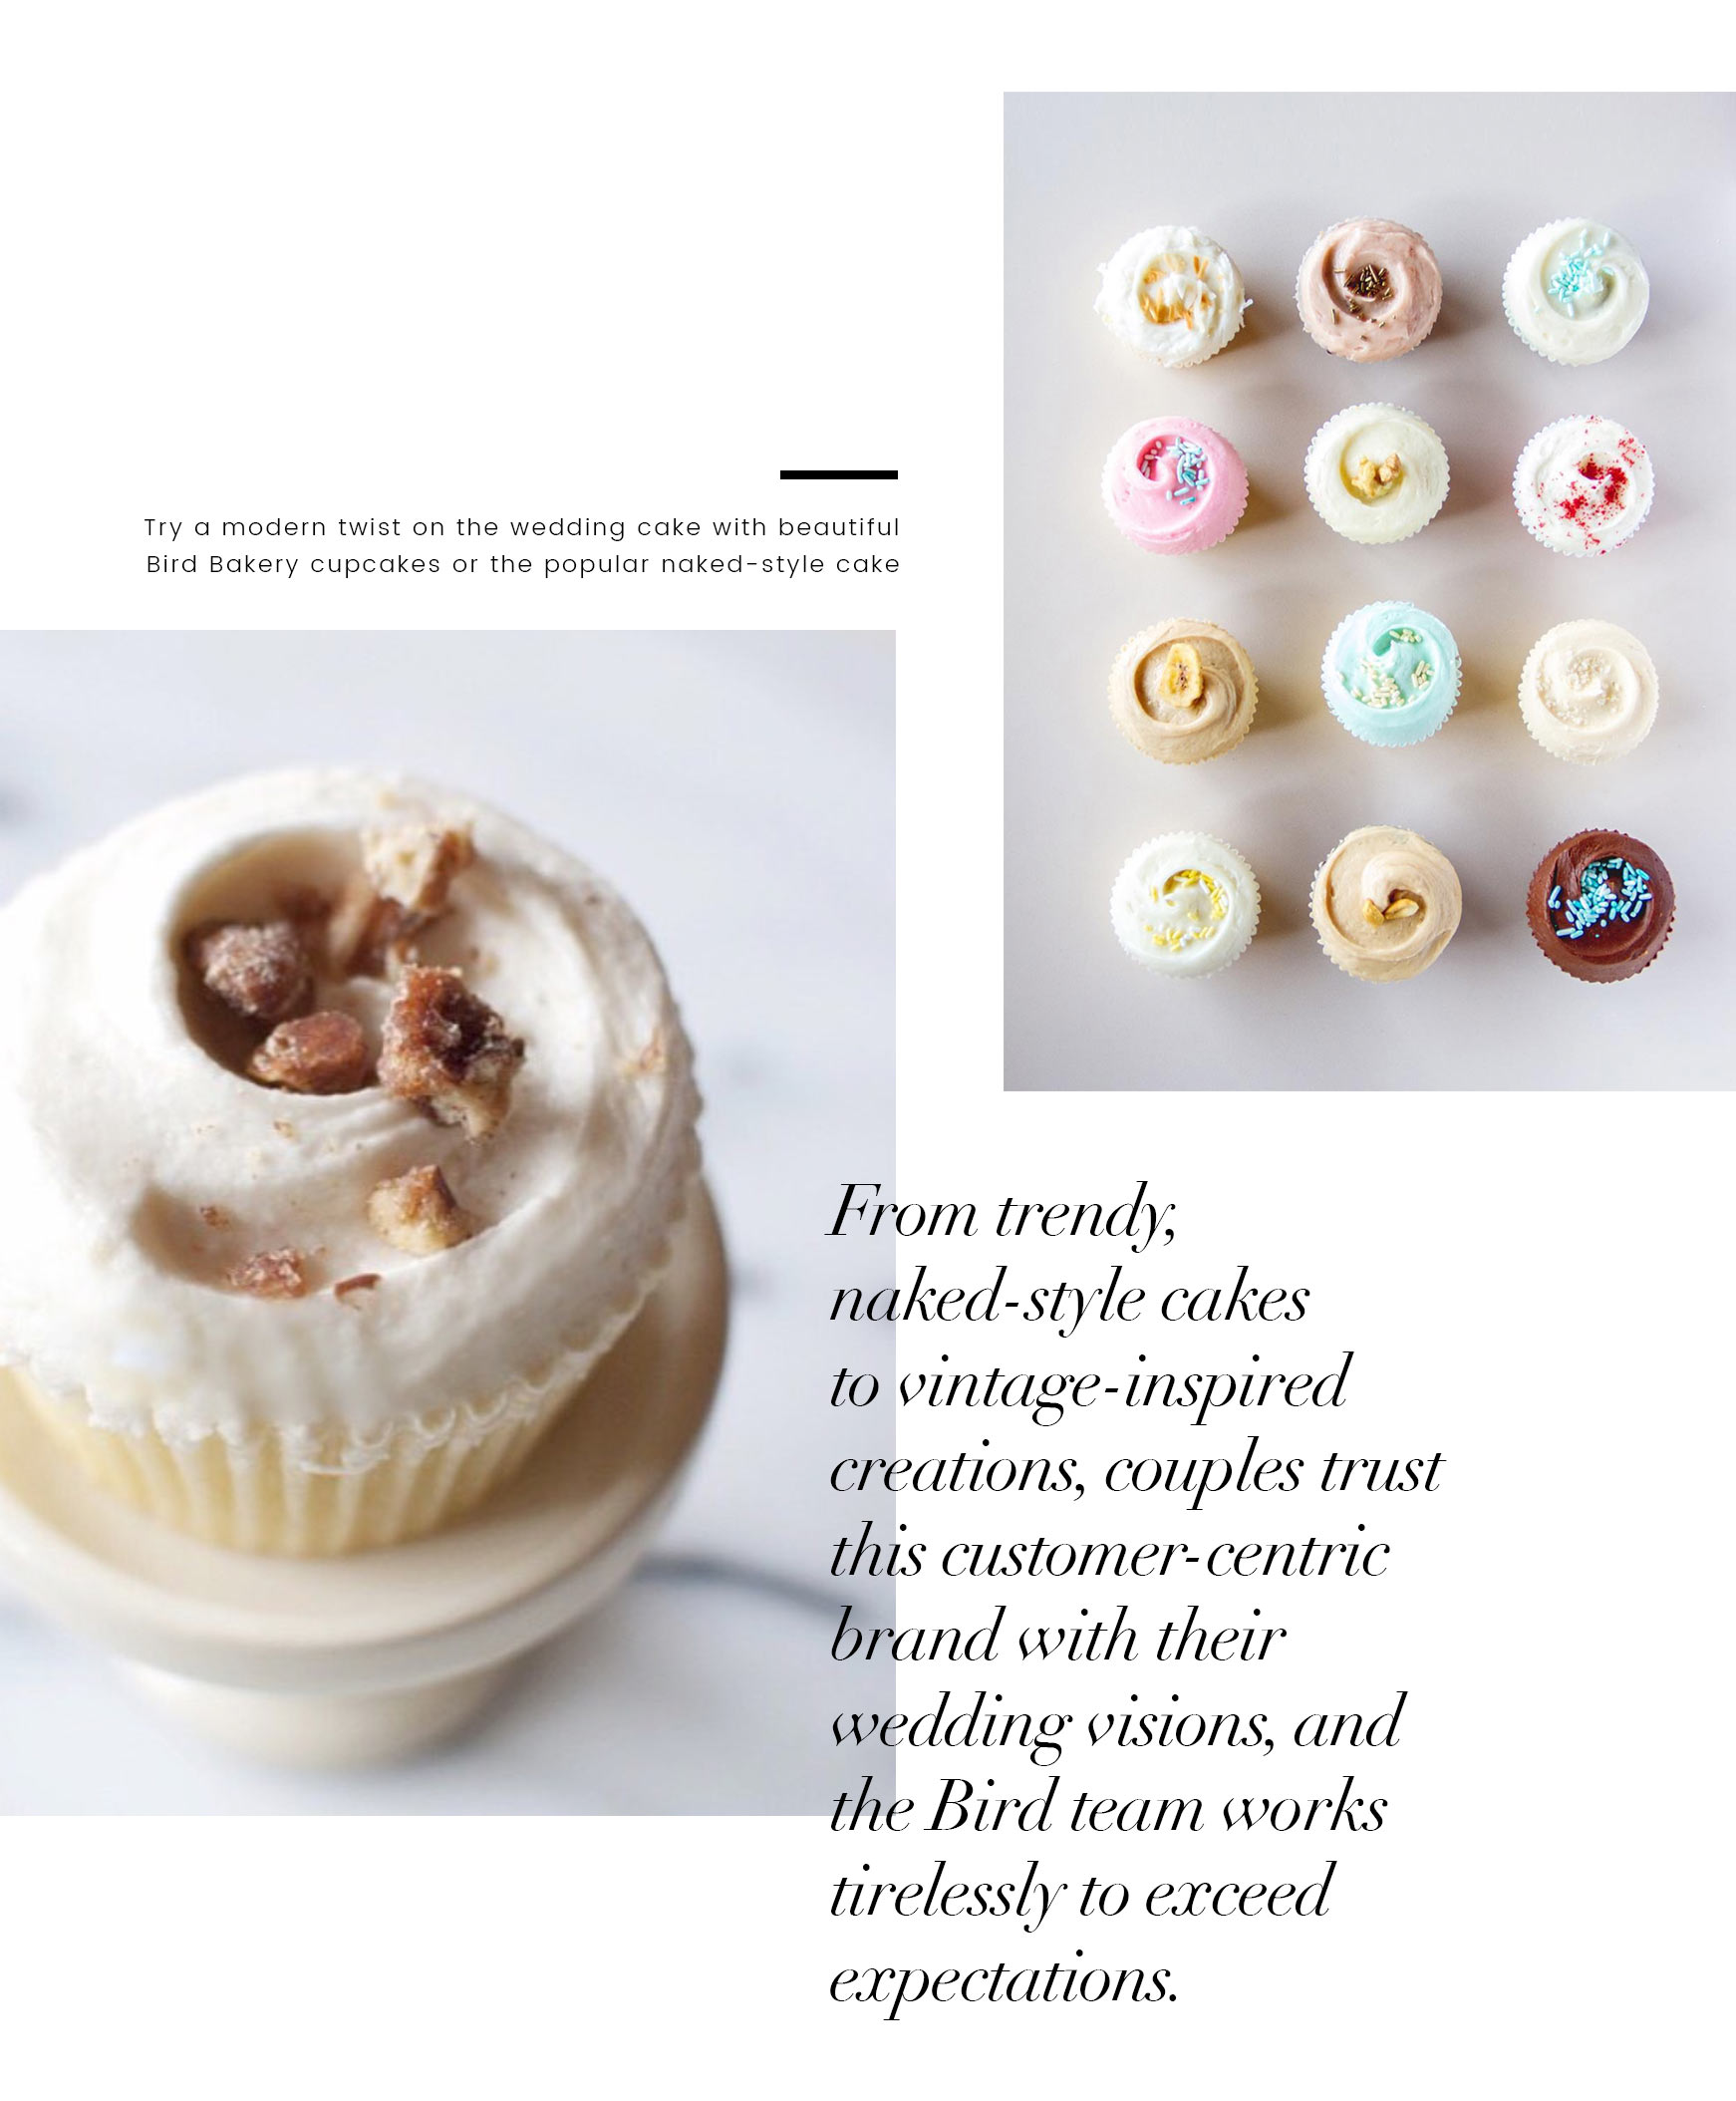 Cupcakes from Bird Bakery. Caption: Try a modern twist on the wedding cake with beautiful Bird Bakery cupcakes or the popular naked-style cake. From trendy naked-style cakes to vintage inspired creations, couples trust this customer-centric brand with their wedding visions, and the Bird team works tirelessly to exceed expectations.